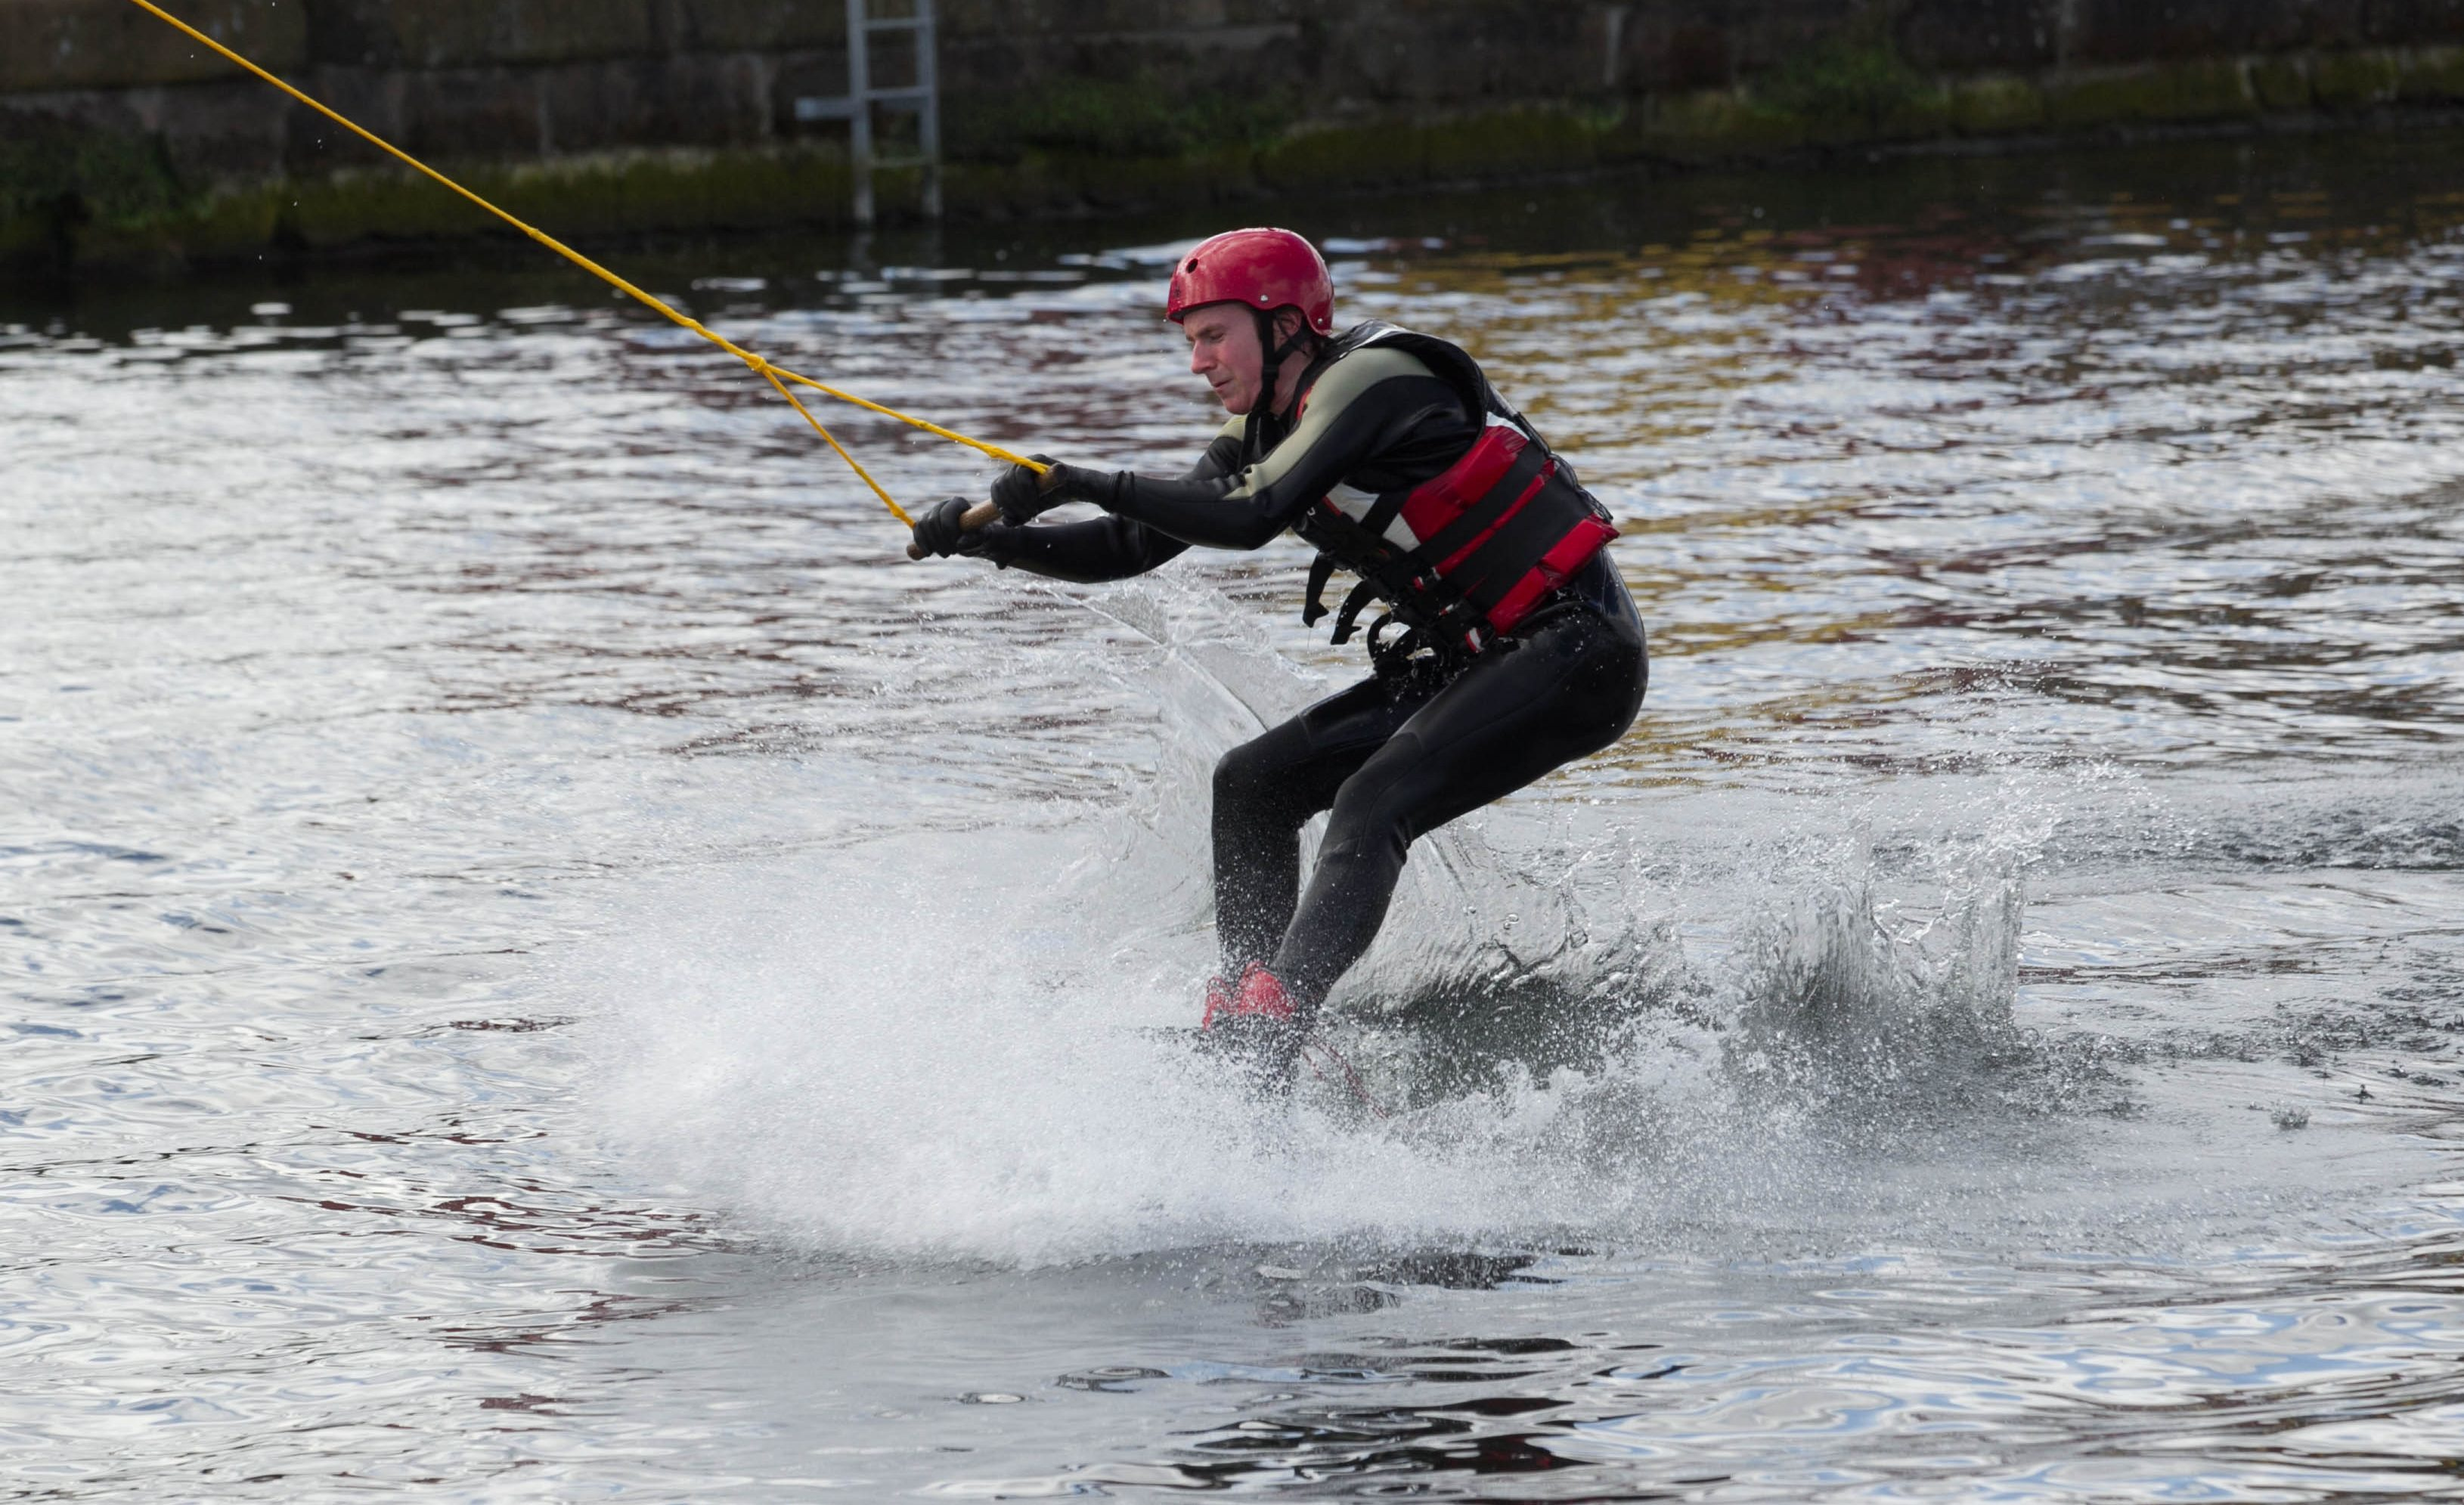 A wakeboarder.